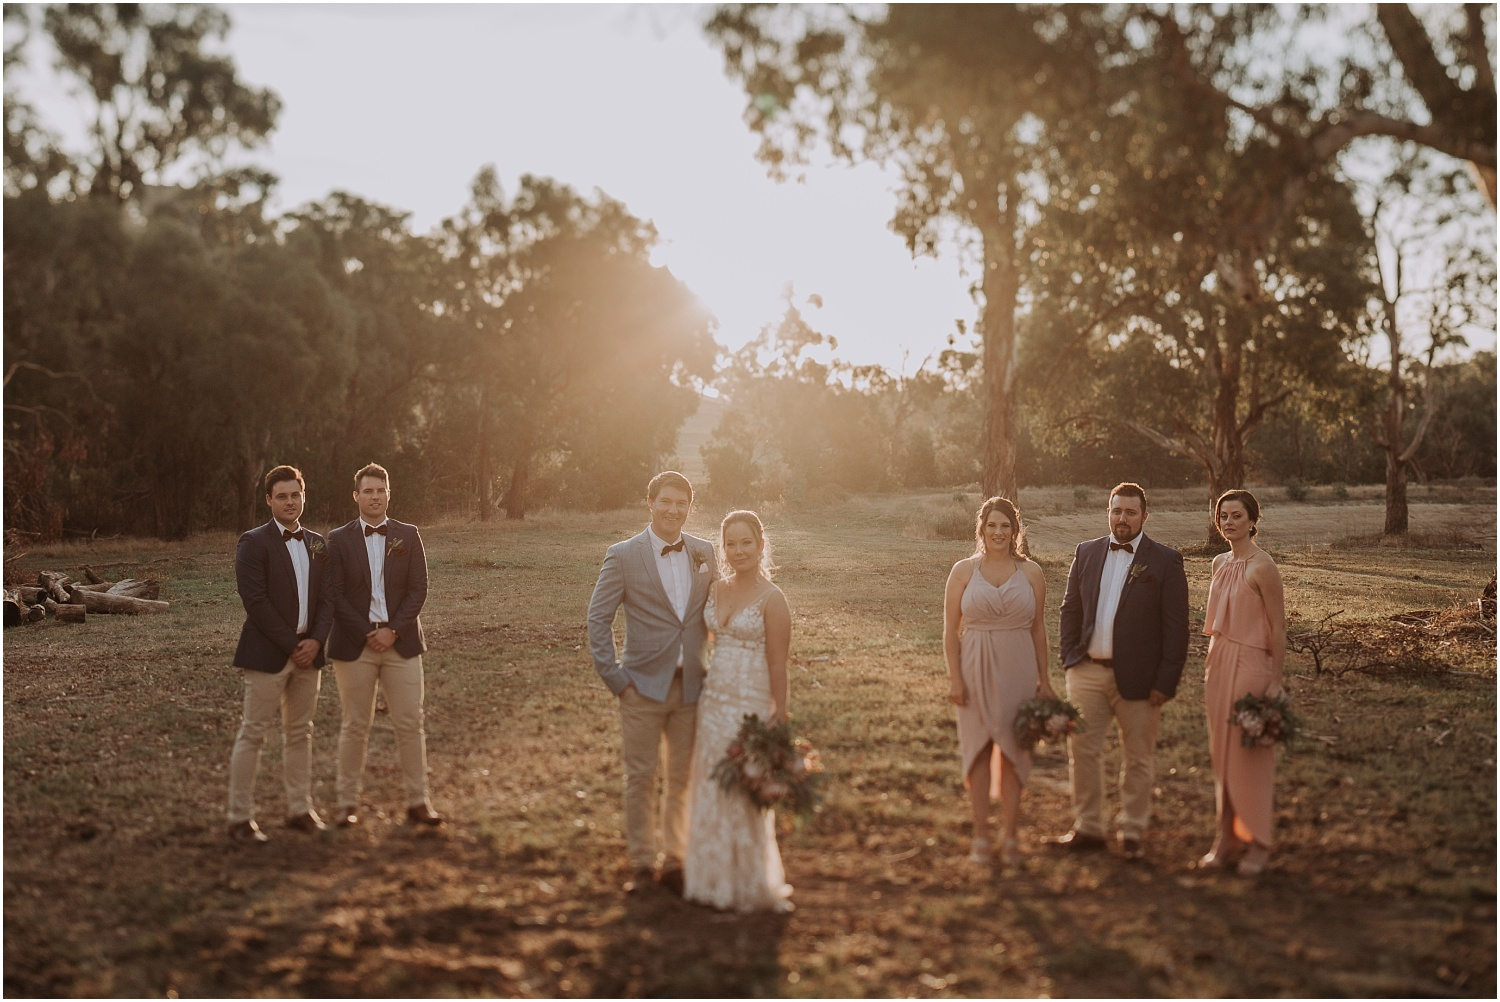 Lacey and Warwick's Yarra Valley winery wedding at Vines Helens Hill._0078.jpg